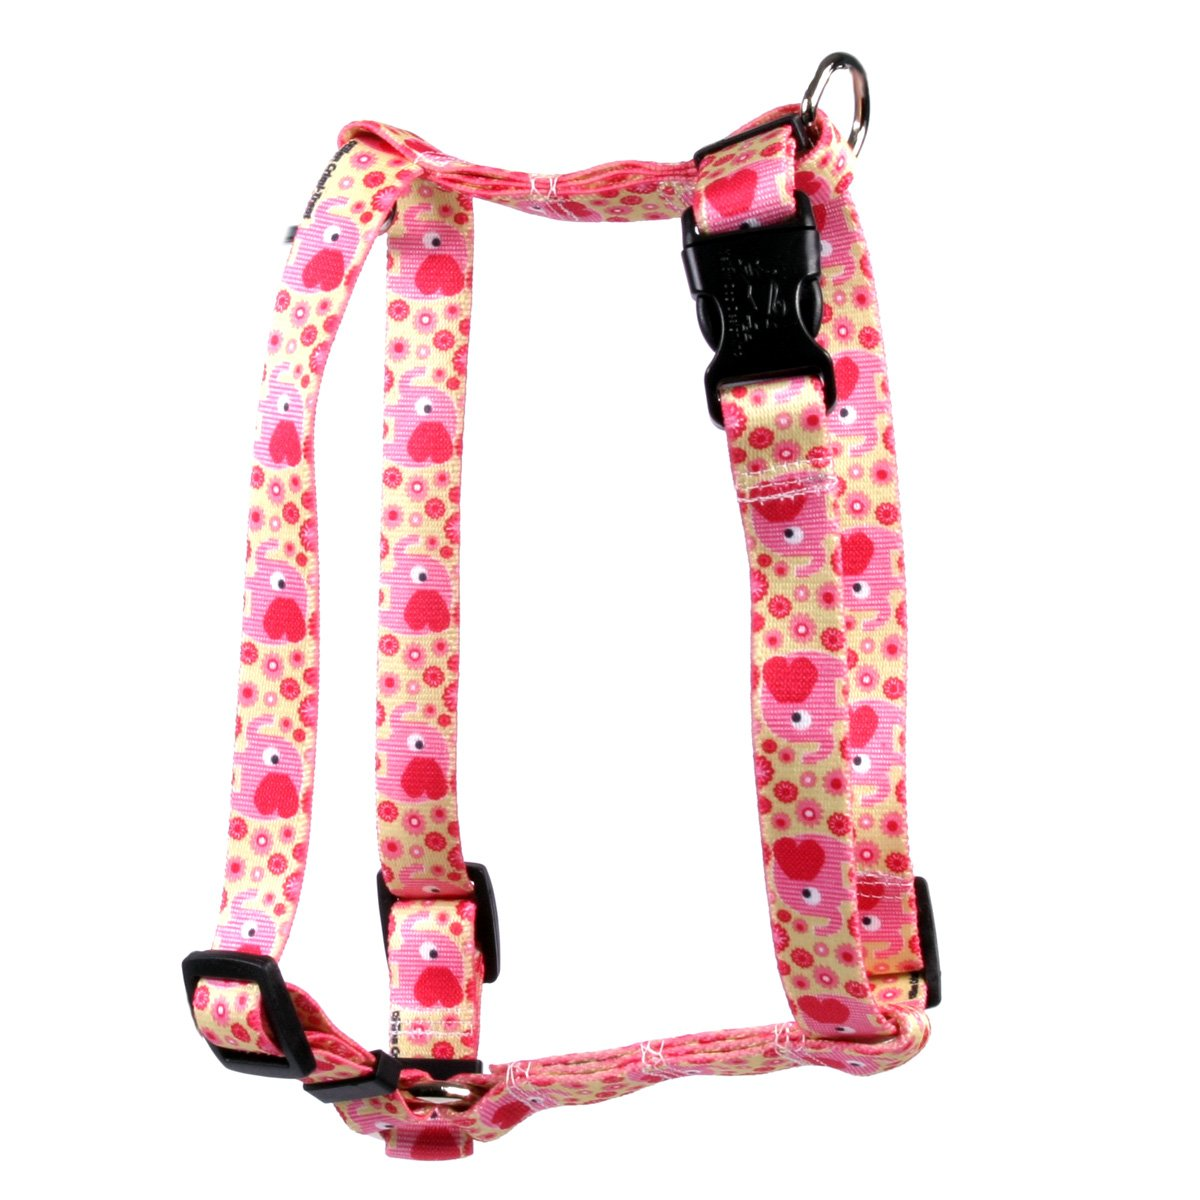 Yellow Dog Design Pink Elephants Roman Style H Dog Harness-X-Small-3/8 and fits Chest 8 to 14'' by Yellow Dog Design